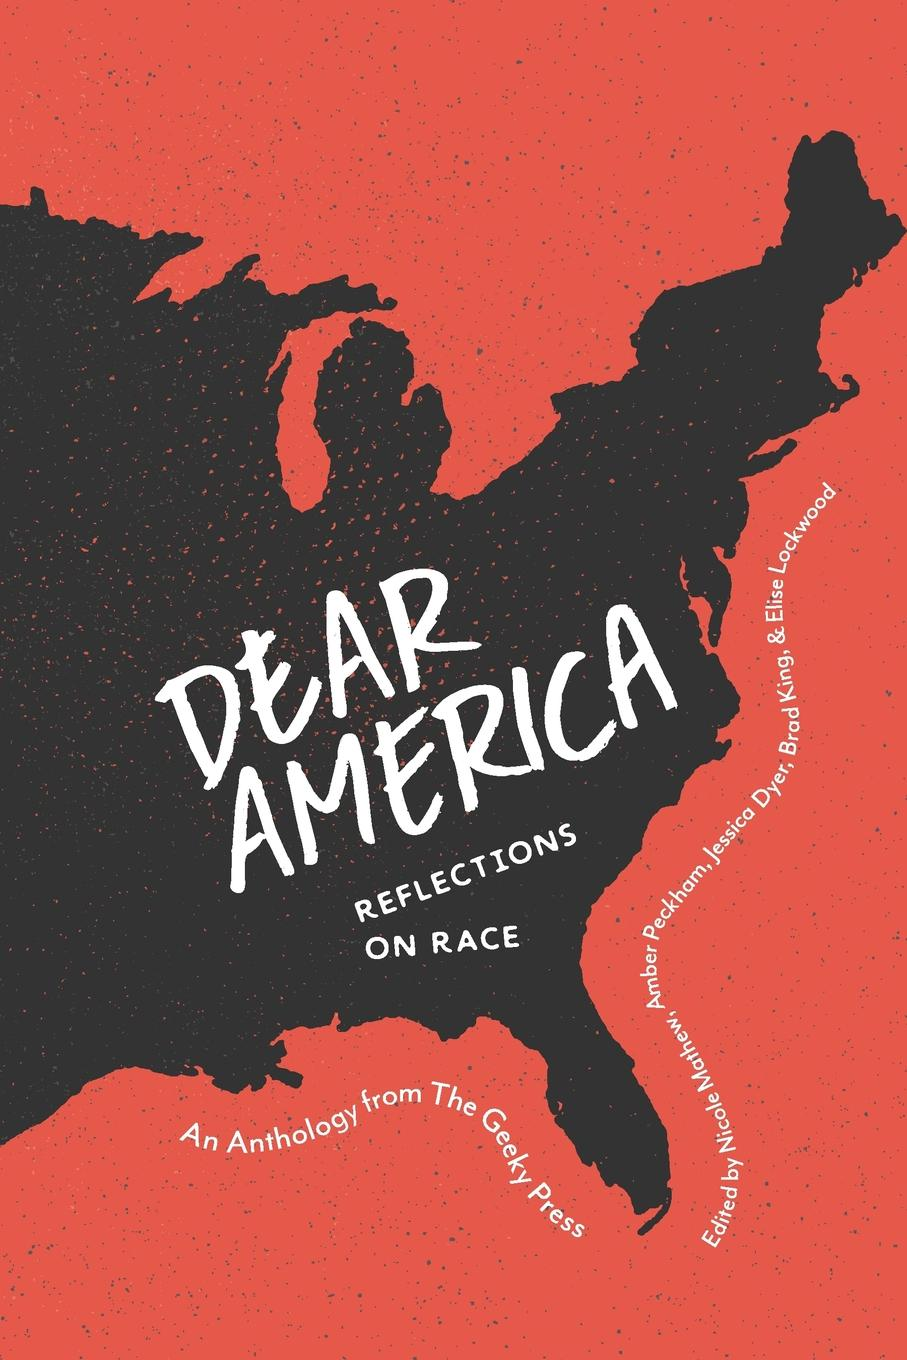 Brad King, Amber Peckham, Nicole Mathew Dear America. Reflections on Race vladimir kernerman the big green tent – we under it reflections and comments